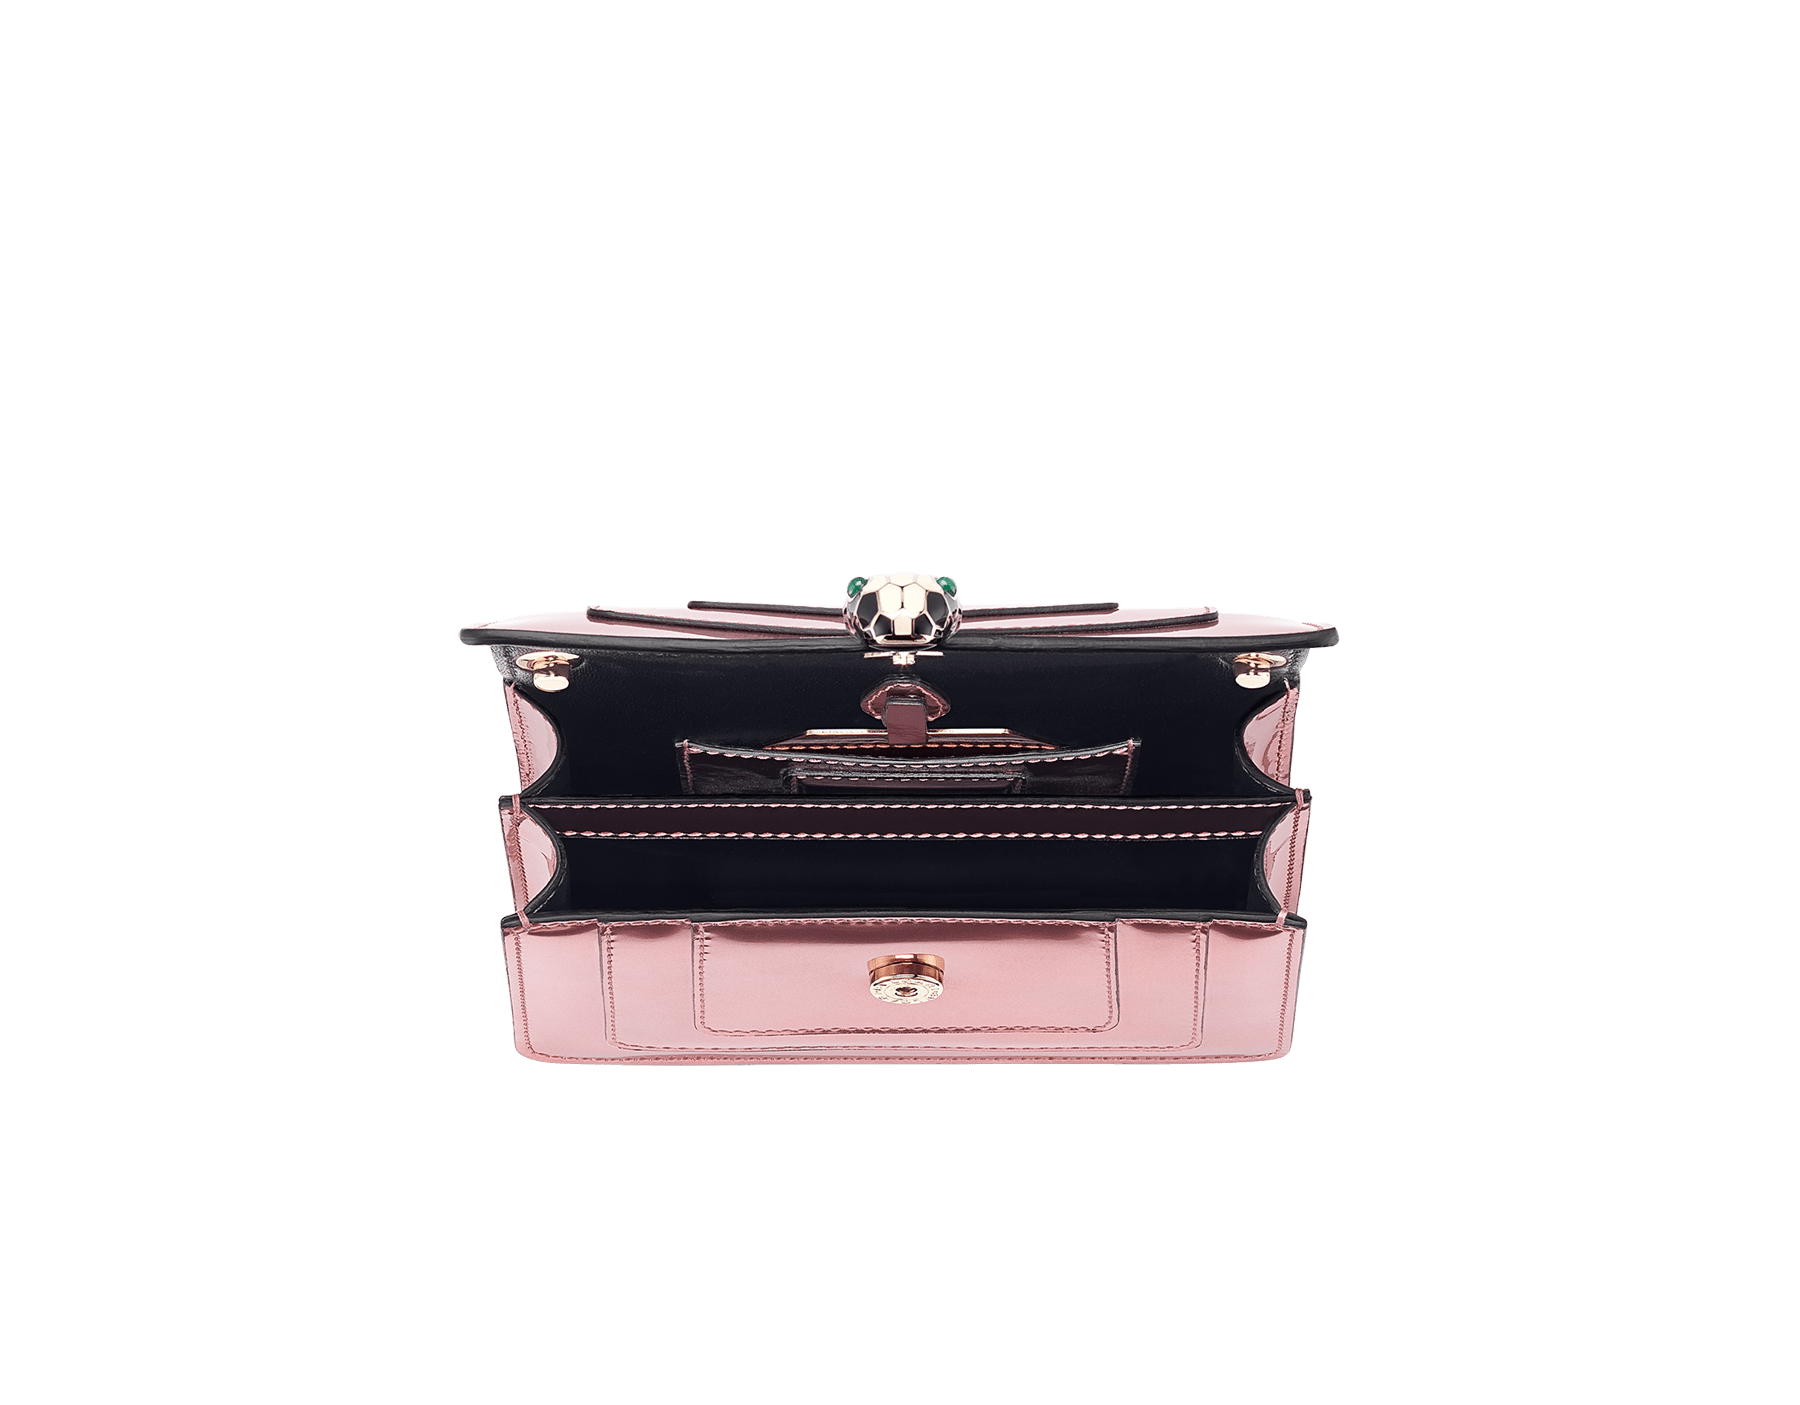 Serpenti Forever mini crossbody bag in sunset rose brushed metallic calf leather. Brass light gold-plated snake head closure in black and white enamel, with green malachite eyes. 288052 image 4